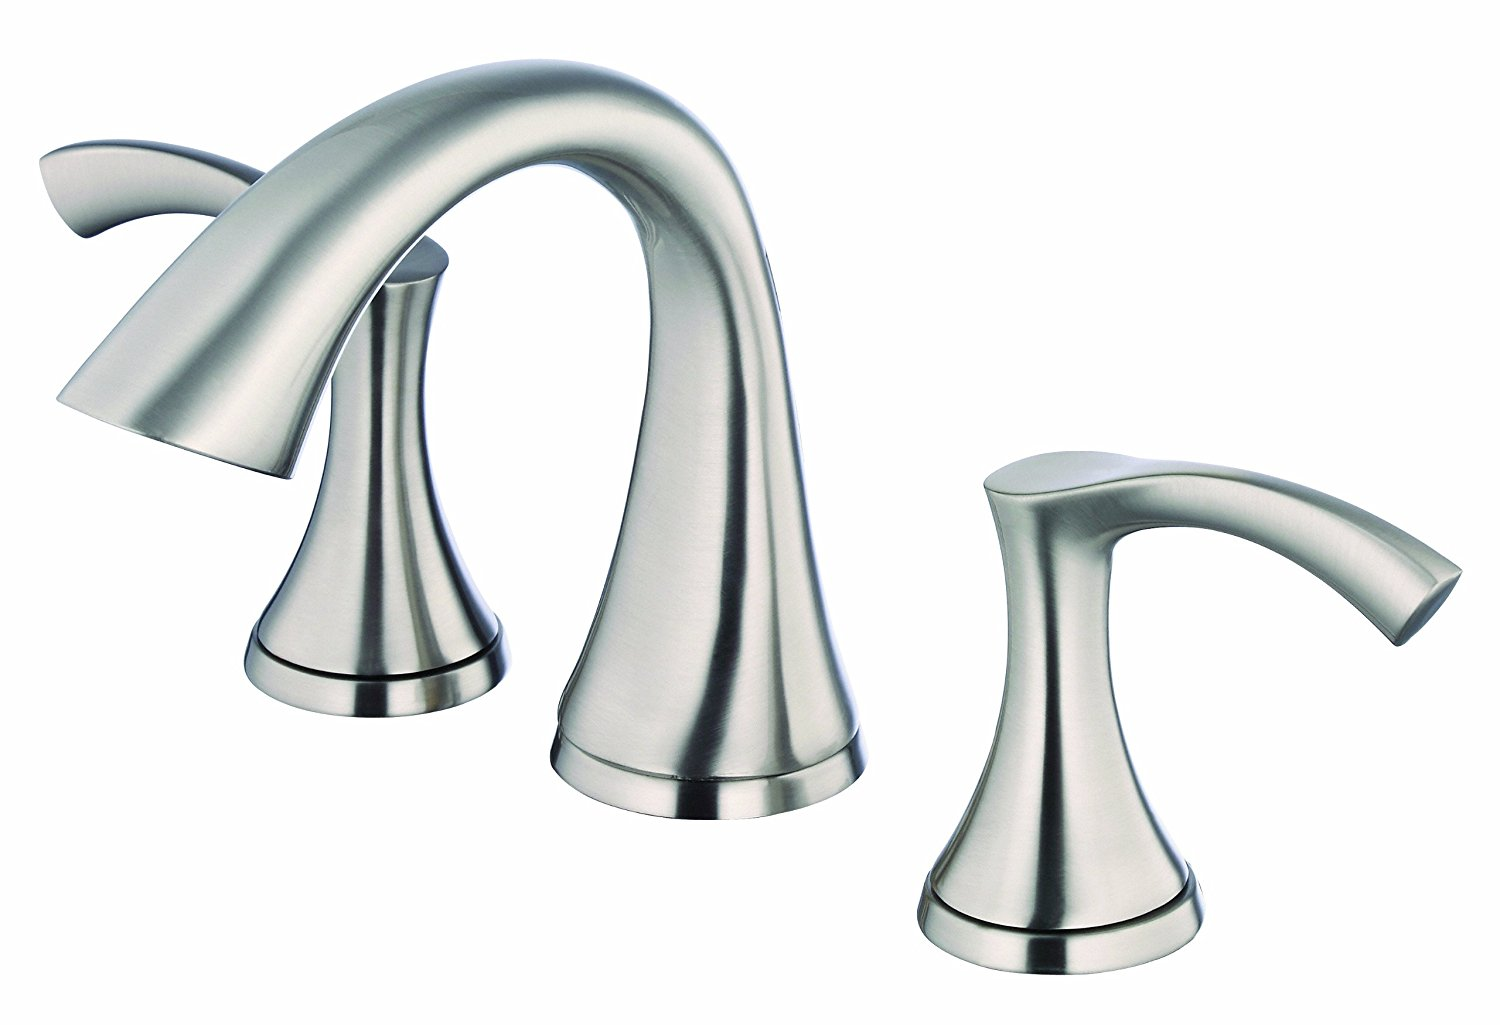 kohler of minimalist ideas faucet widespread inspiration design faucets awesome best bathroom purist